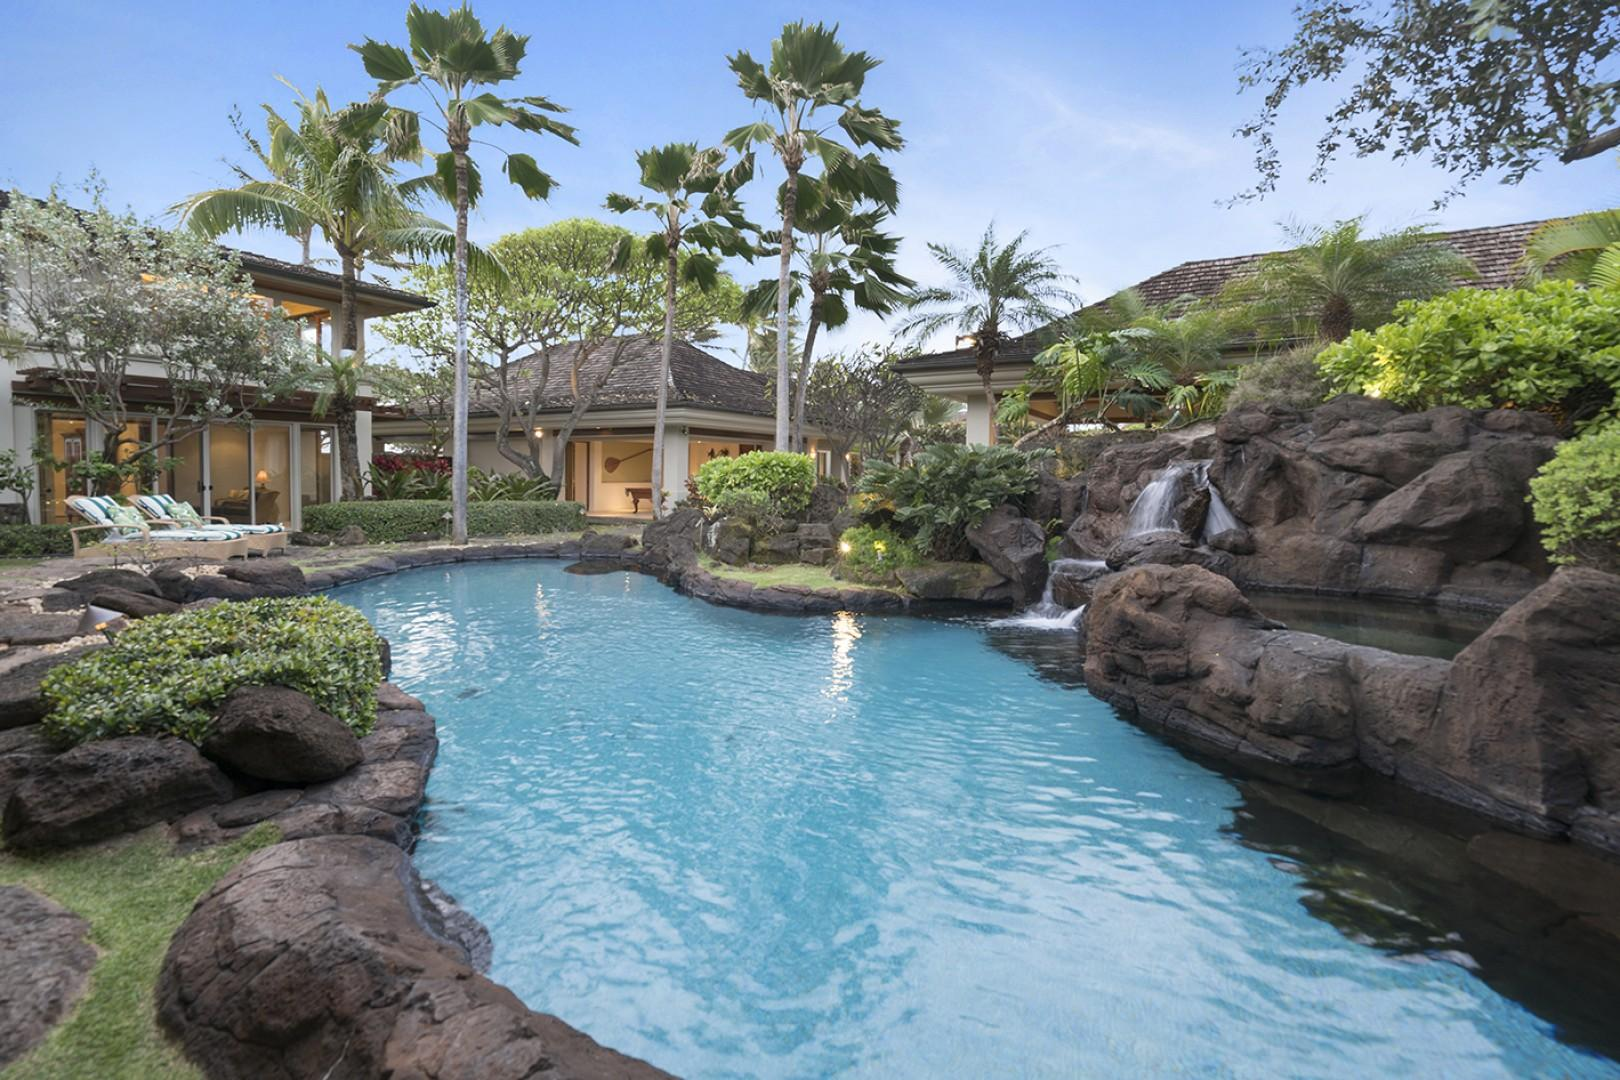 Tropical lagoon style pool with natural rocks and cascading waterfalls.